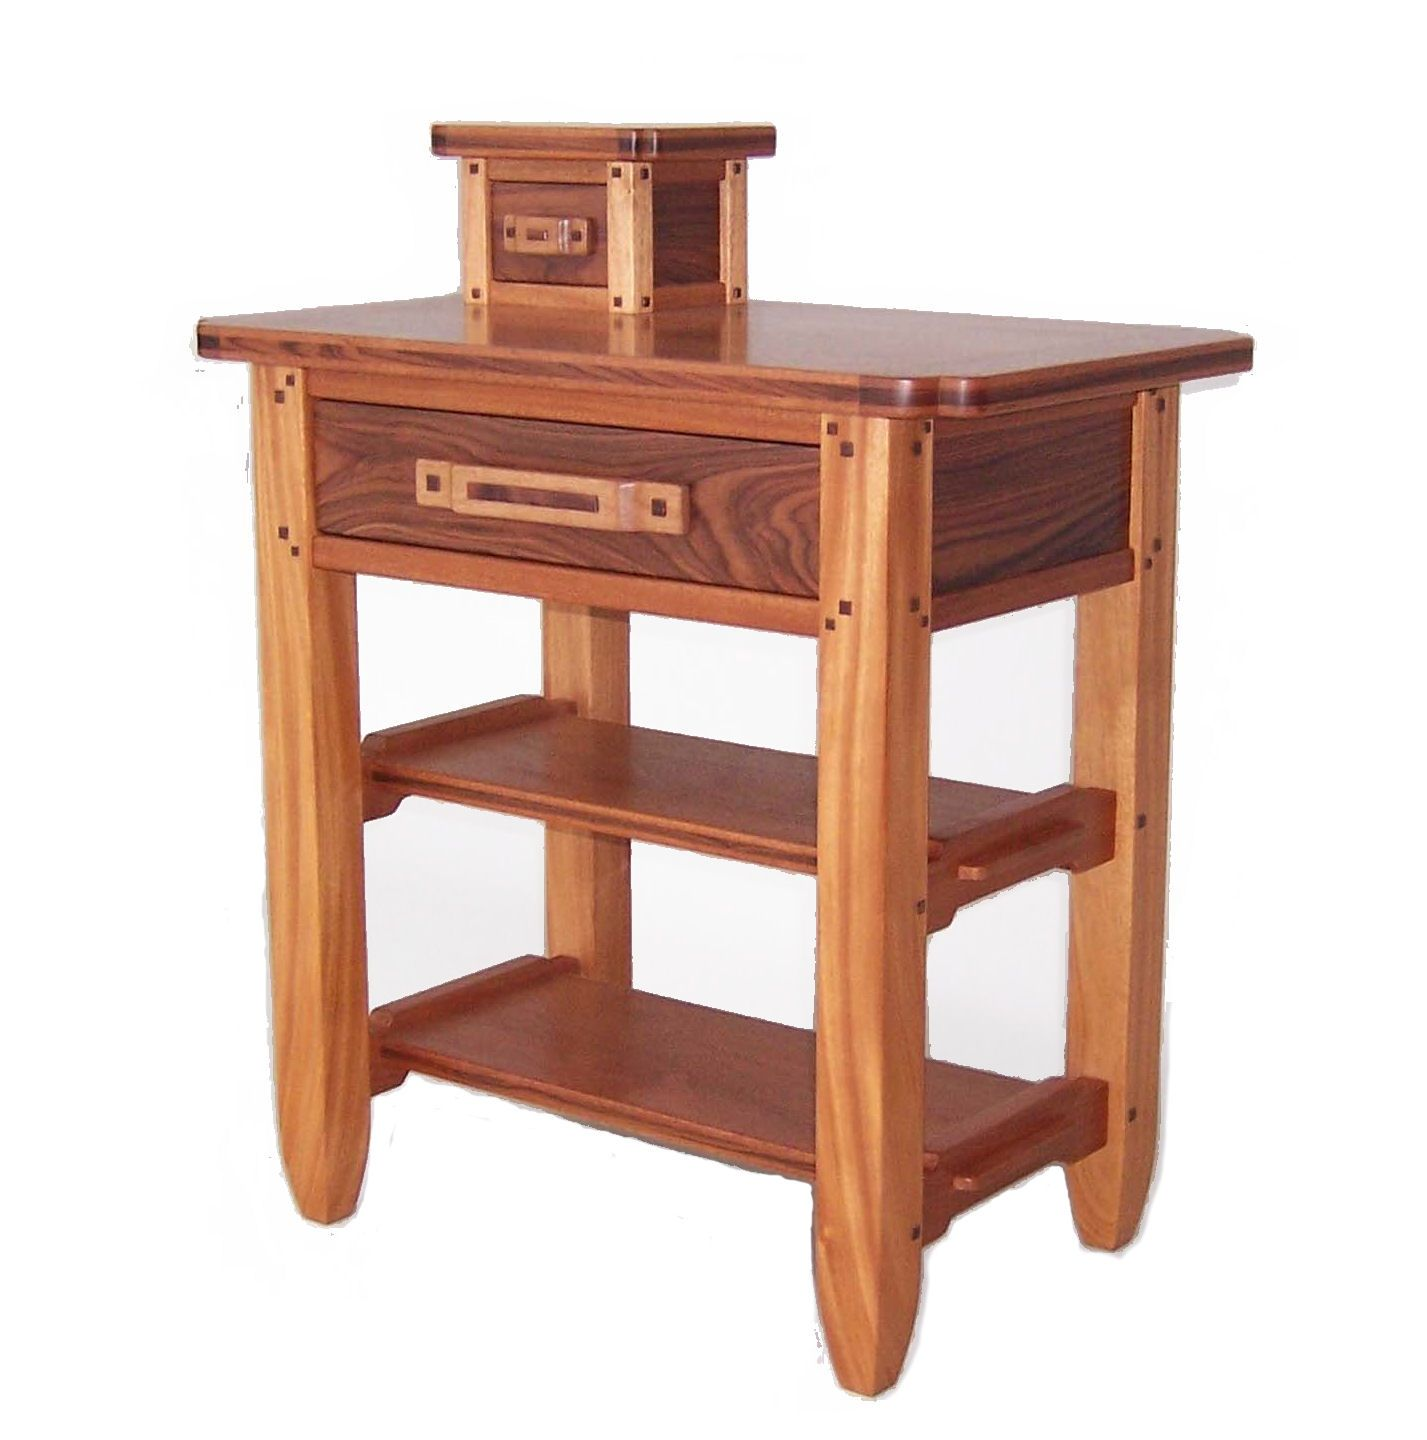 Fine Furniture Stores Online: Greene And Greene Nolen End Table By Brian Brace Fine